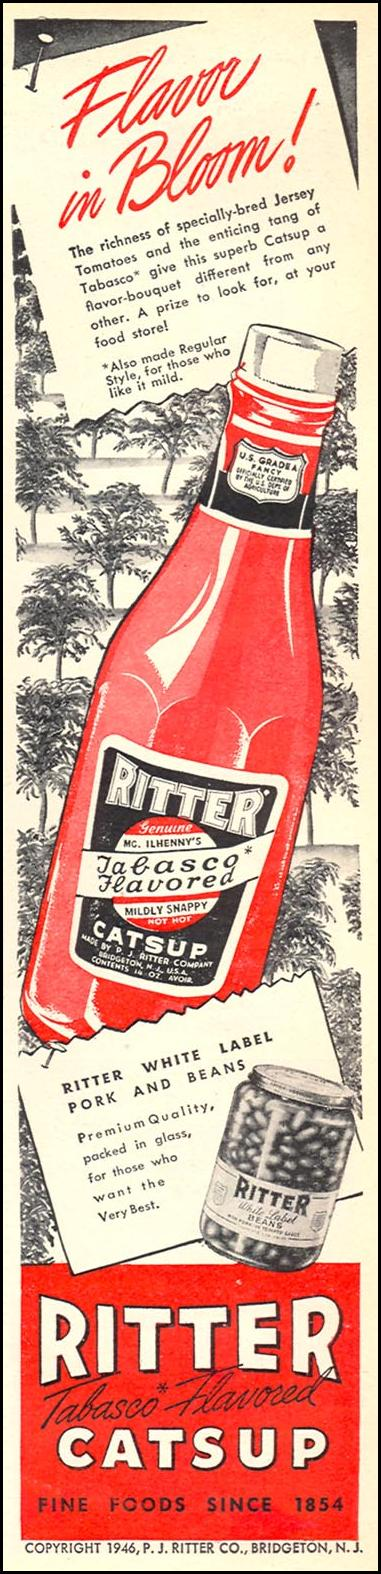 RITTER TABASCO FLAVORED CATSUP WOMAN'S DAY 06/01/1946 p. 7